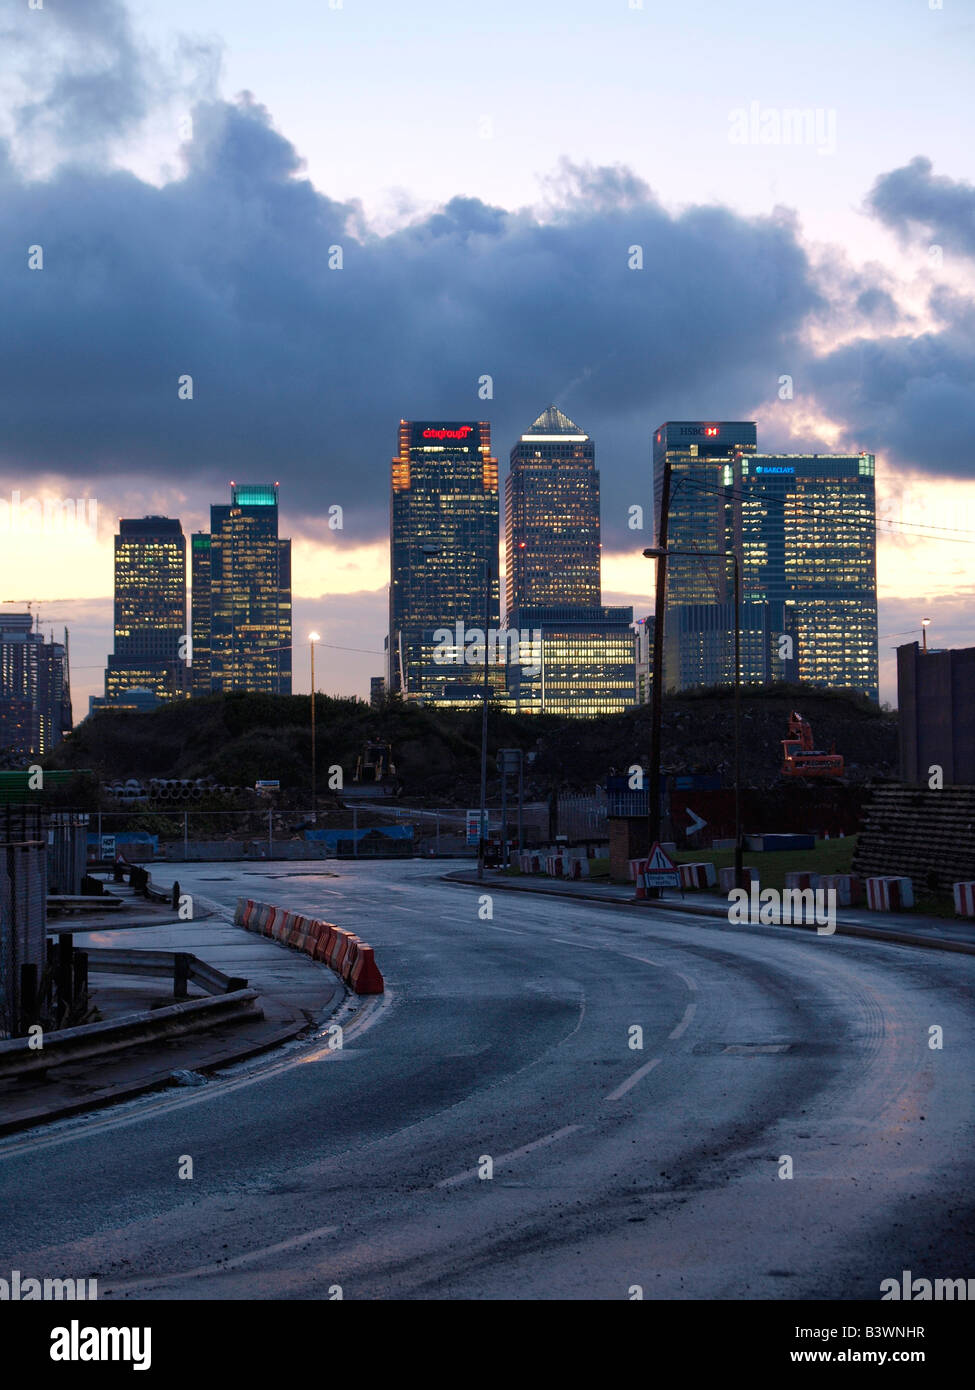 Canary Wharf bank buildings at night sunset with curvy road in front London UK - Stock Image